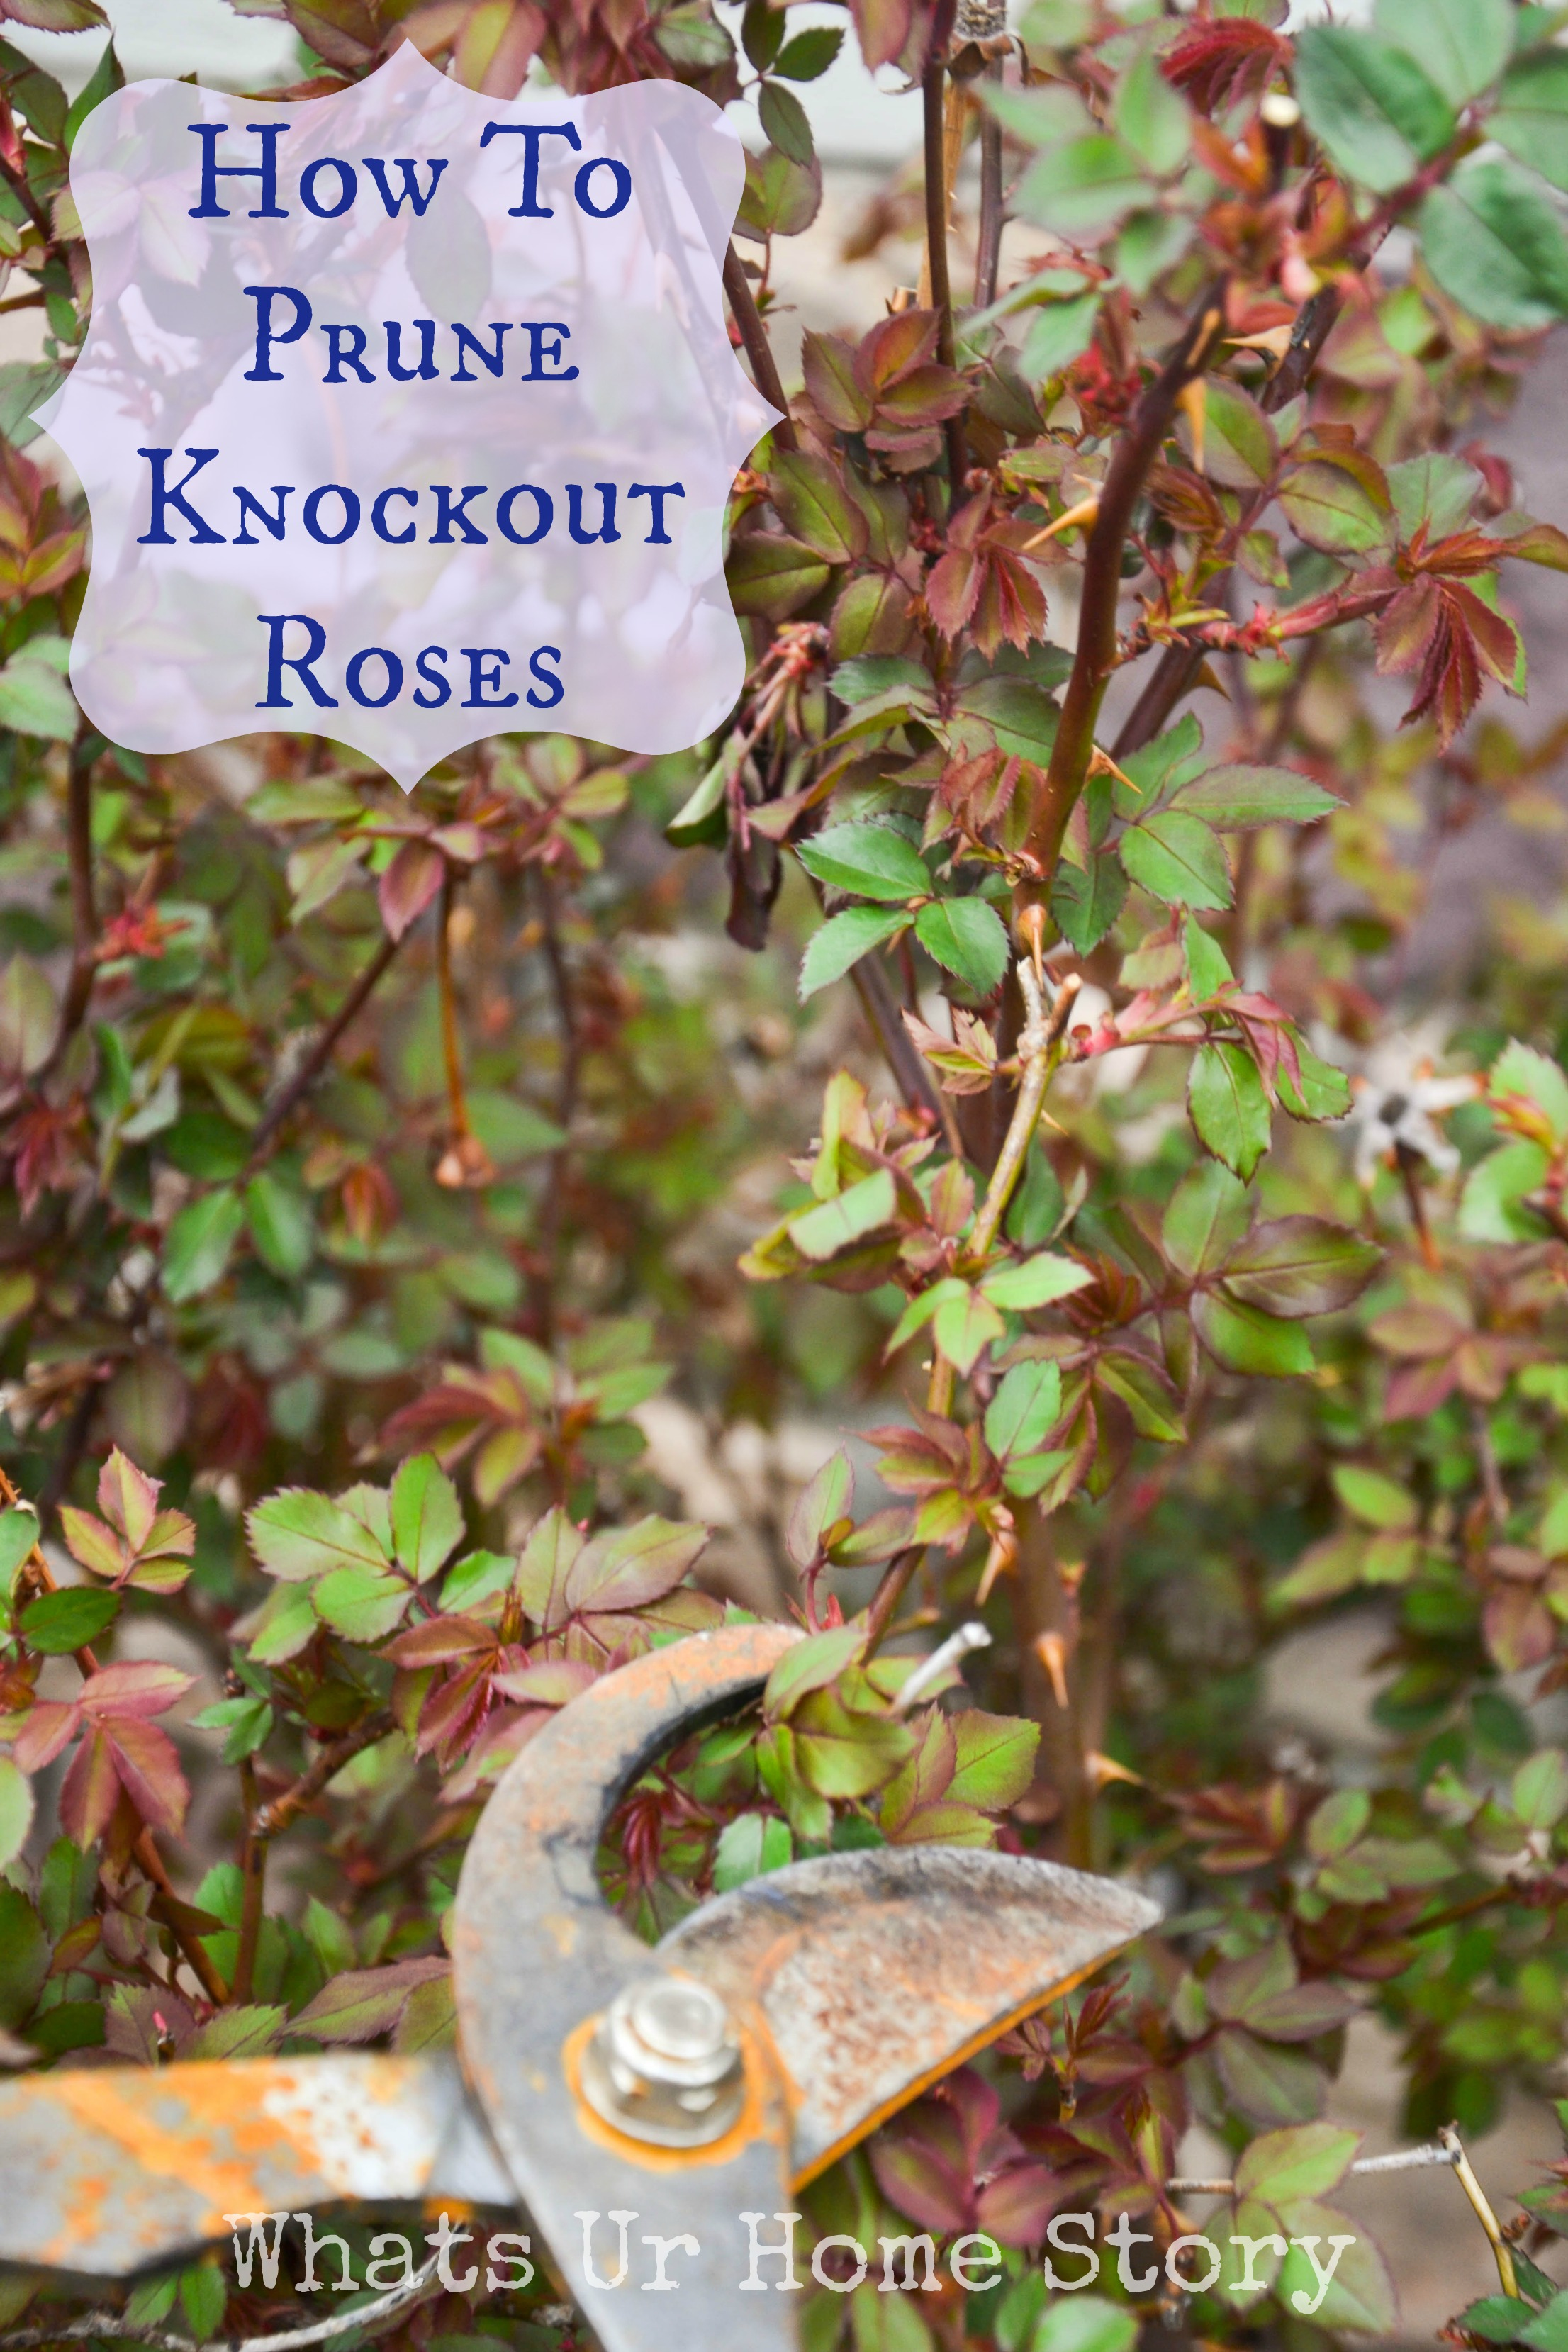 How to prune a rose bush - How To Prune Knockout Roses Pruning Knockout Roses